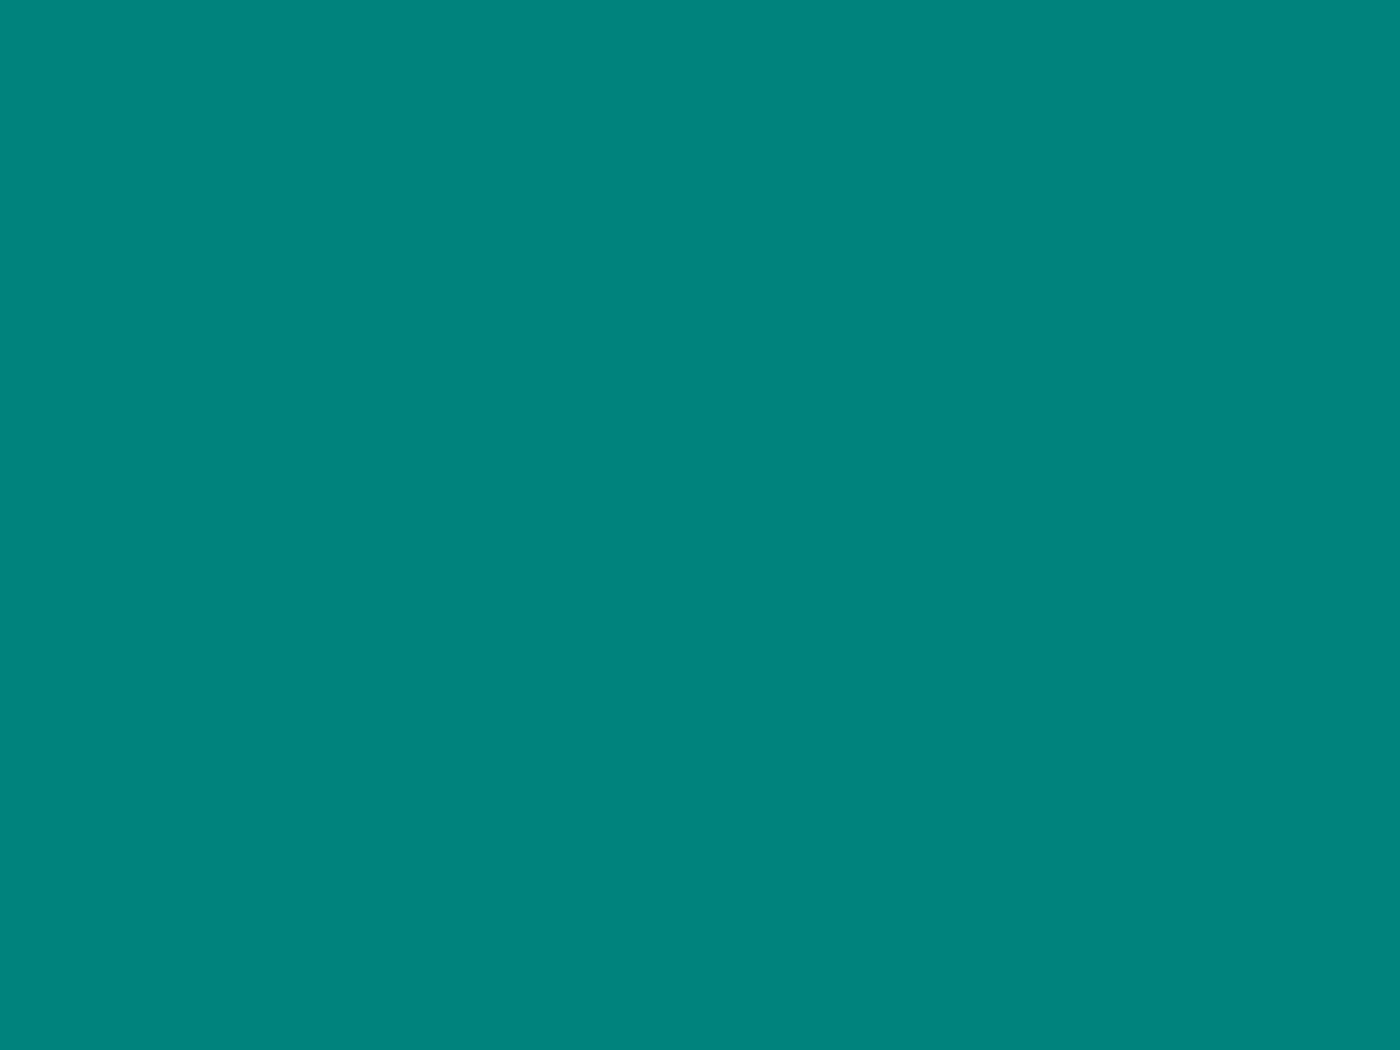 Pin Teal Green On Pinterest. Feng Shui Living Room Colours. Modern Living Room Images. Living Room Pictures For Walls. Rustic Luxe Living Room. Antique Furniture Living Room. Asian Paints Living Room Color Shades. Ikea Design Ideas Living Room. Living Room Sectionals For Sale